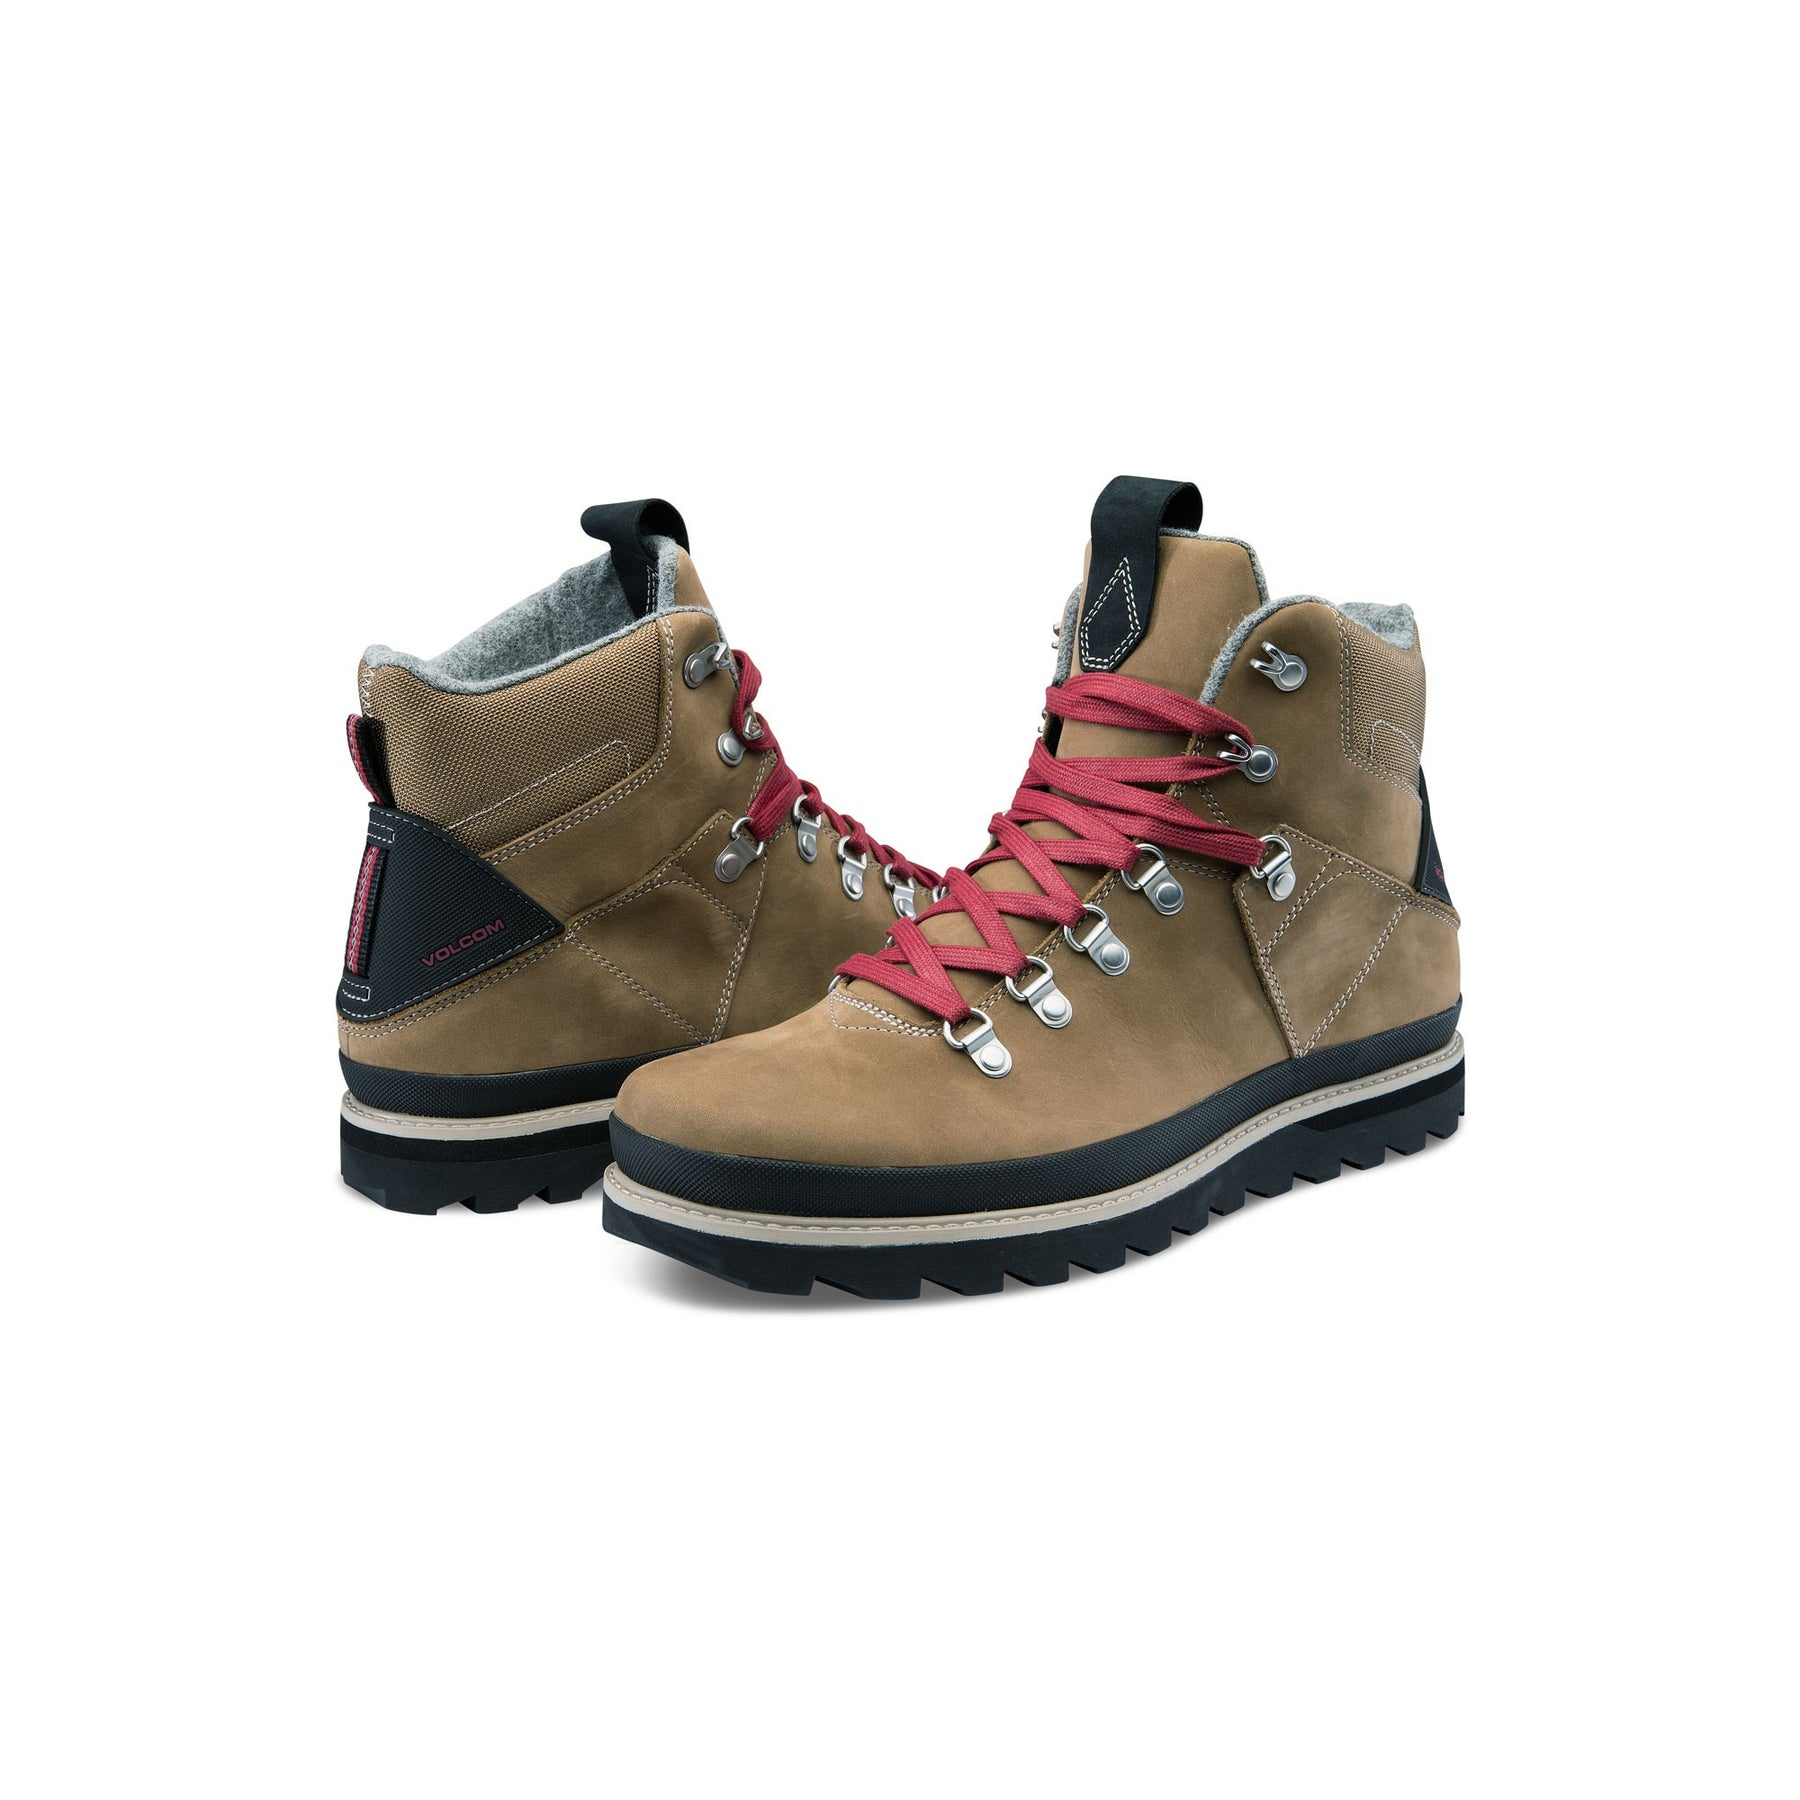 Buy discounted volcom boots at 88 Gear